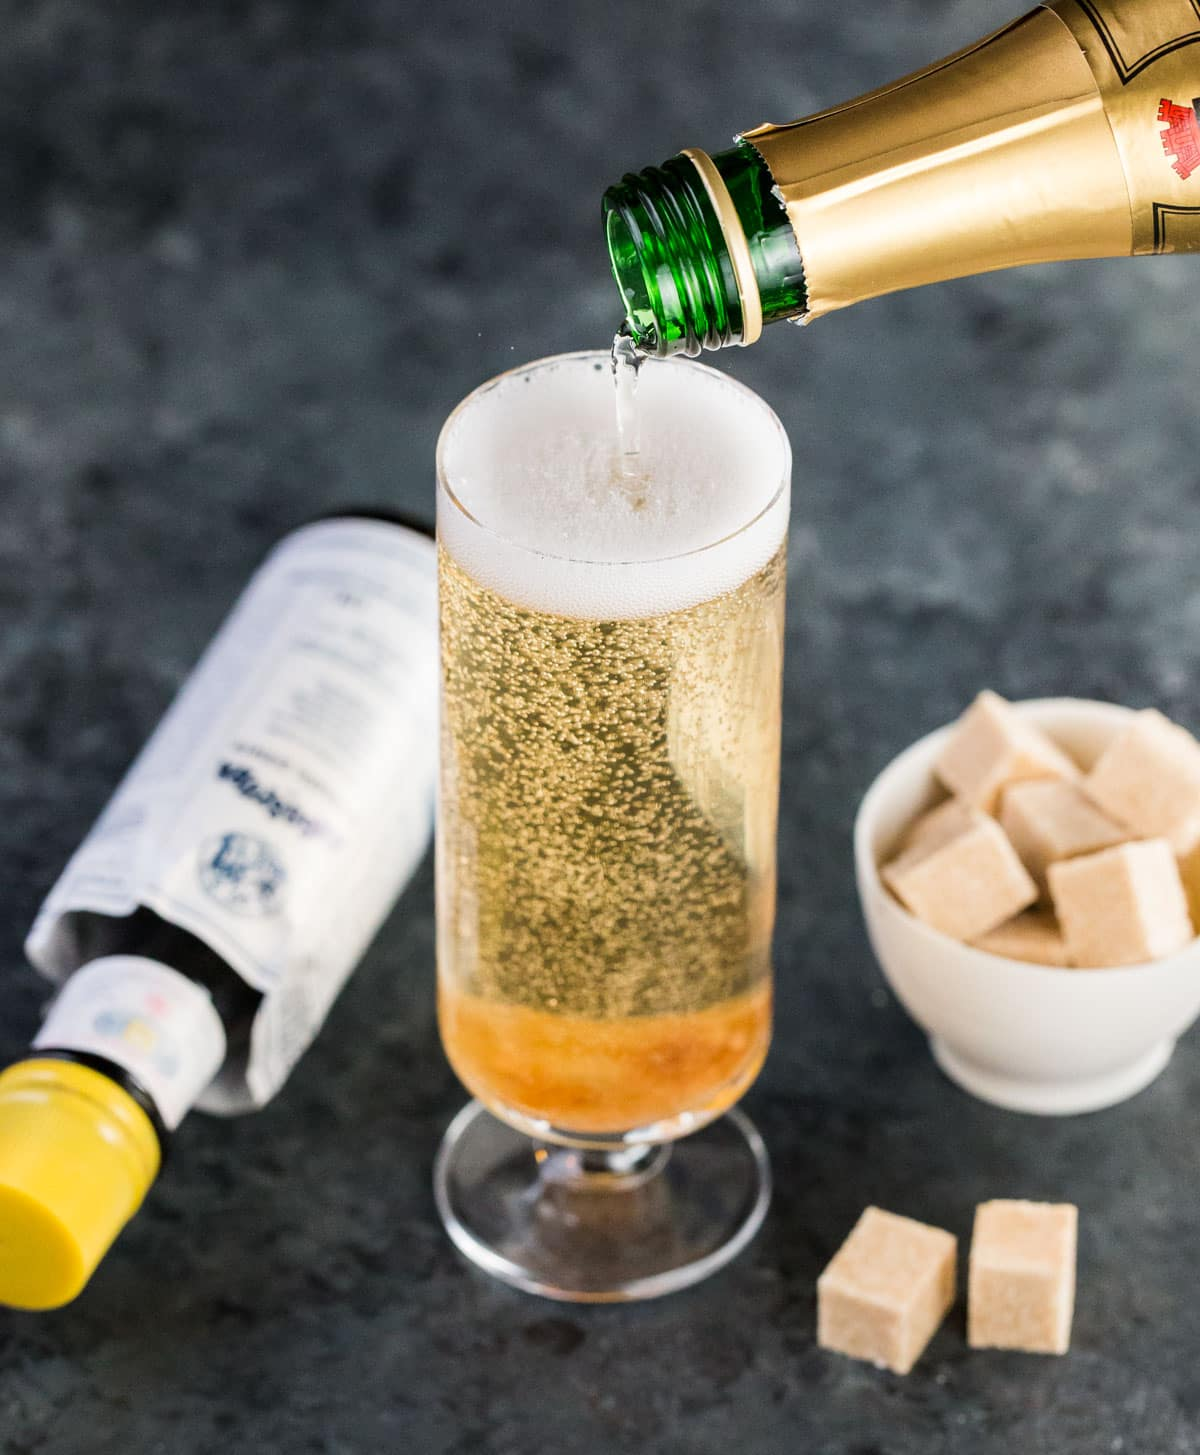 Champagne poured into a flute glass with a bowl of brown sugar cubes and a bottle of bitters for a Classic Champagne Cocktail.